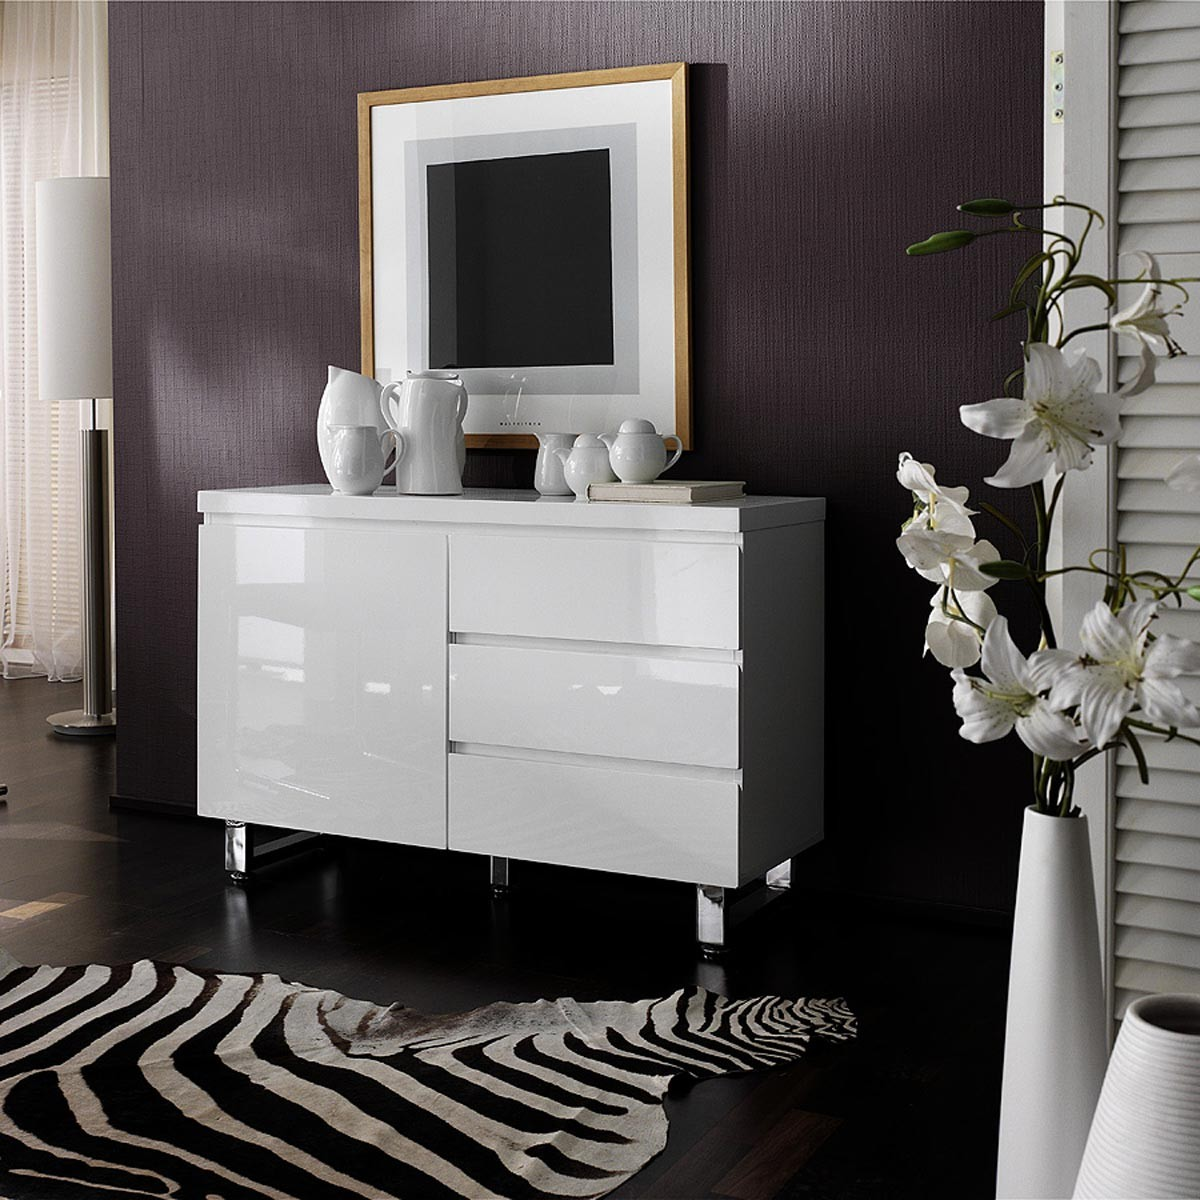 kommode tucker 1 t r 3 schubladen in hochglanz lack wei. Black Bedroom Furniture Sets. Home Design Ideas